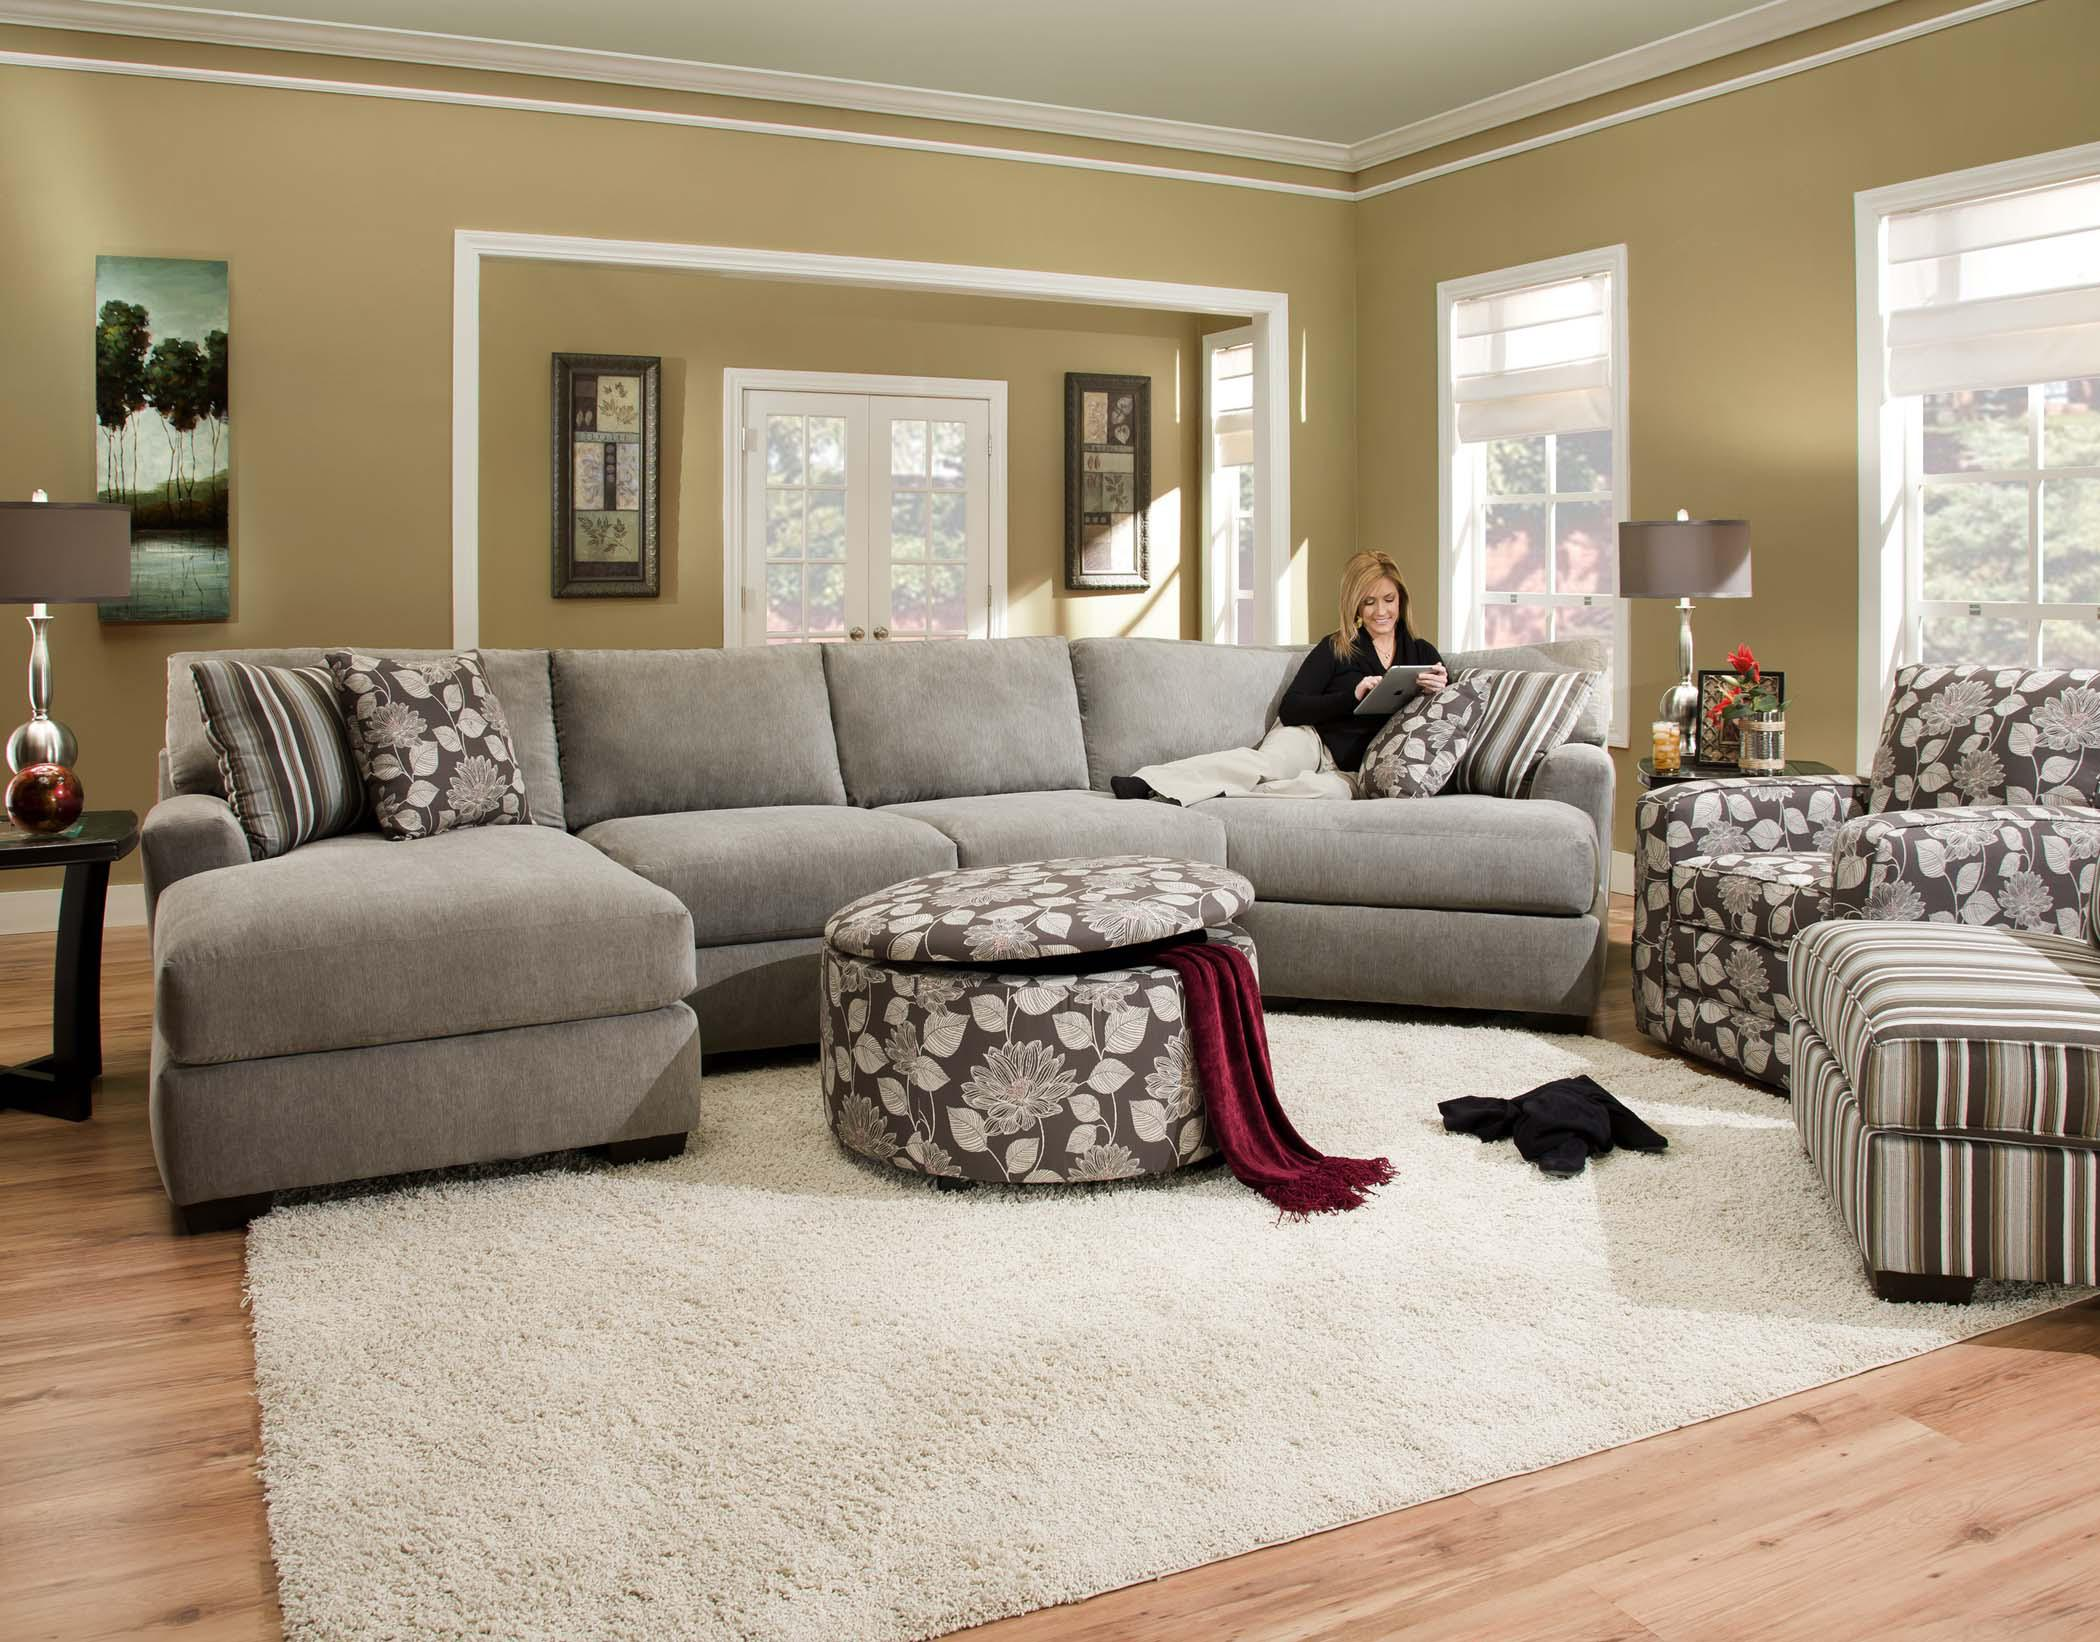 Corinthian 29A0 Sectional Sofa with 4 Seats | Standard Furniture ...